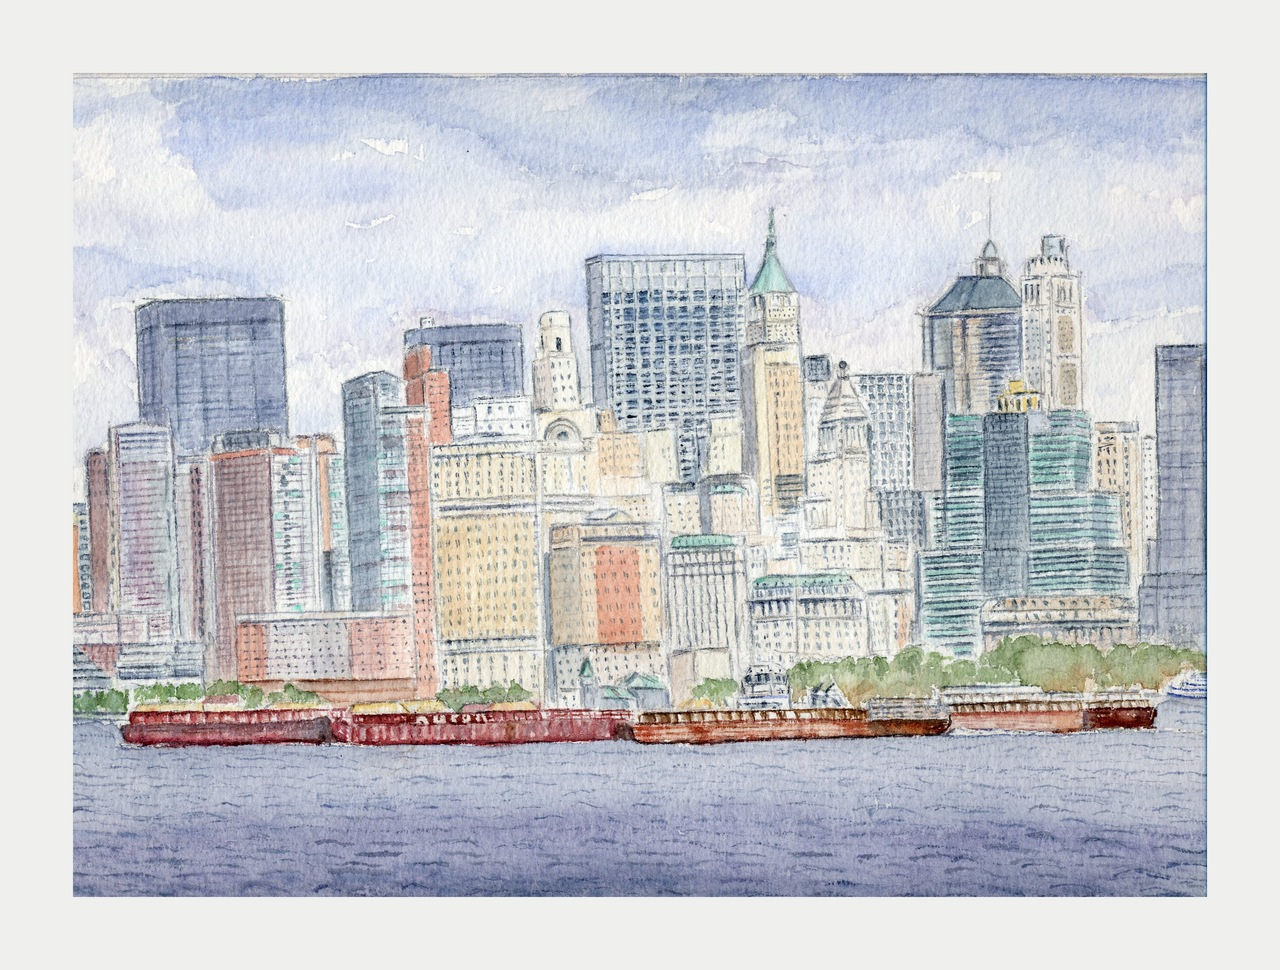 Barges à Manhattan - Aquarelle copyright Christiane Rau 2011 d'après photo de Johann Rau